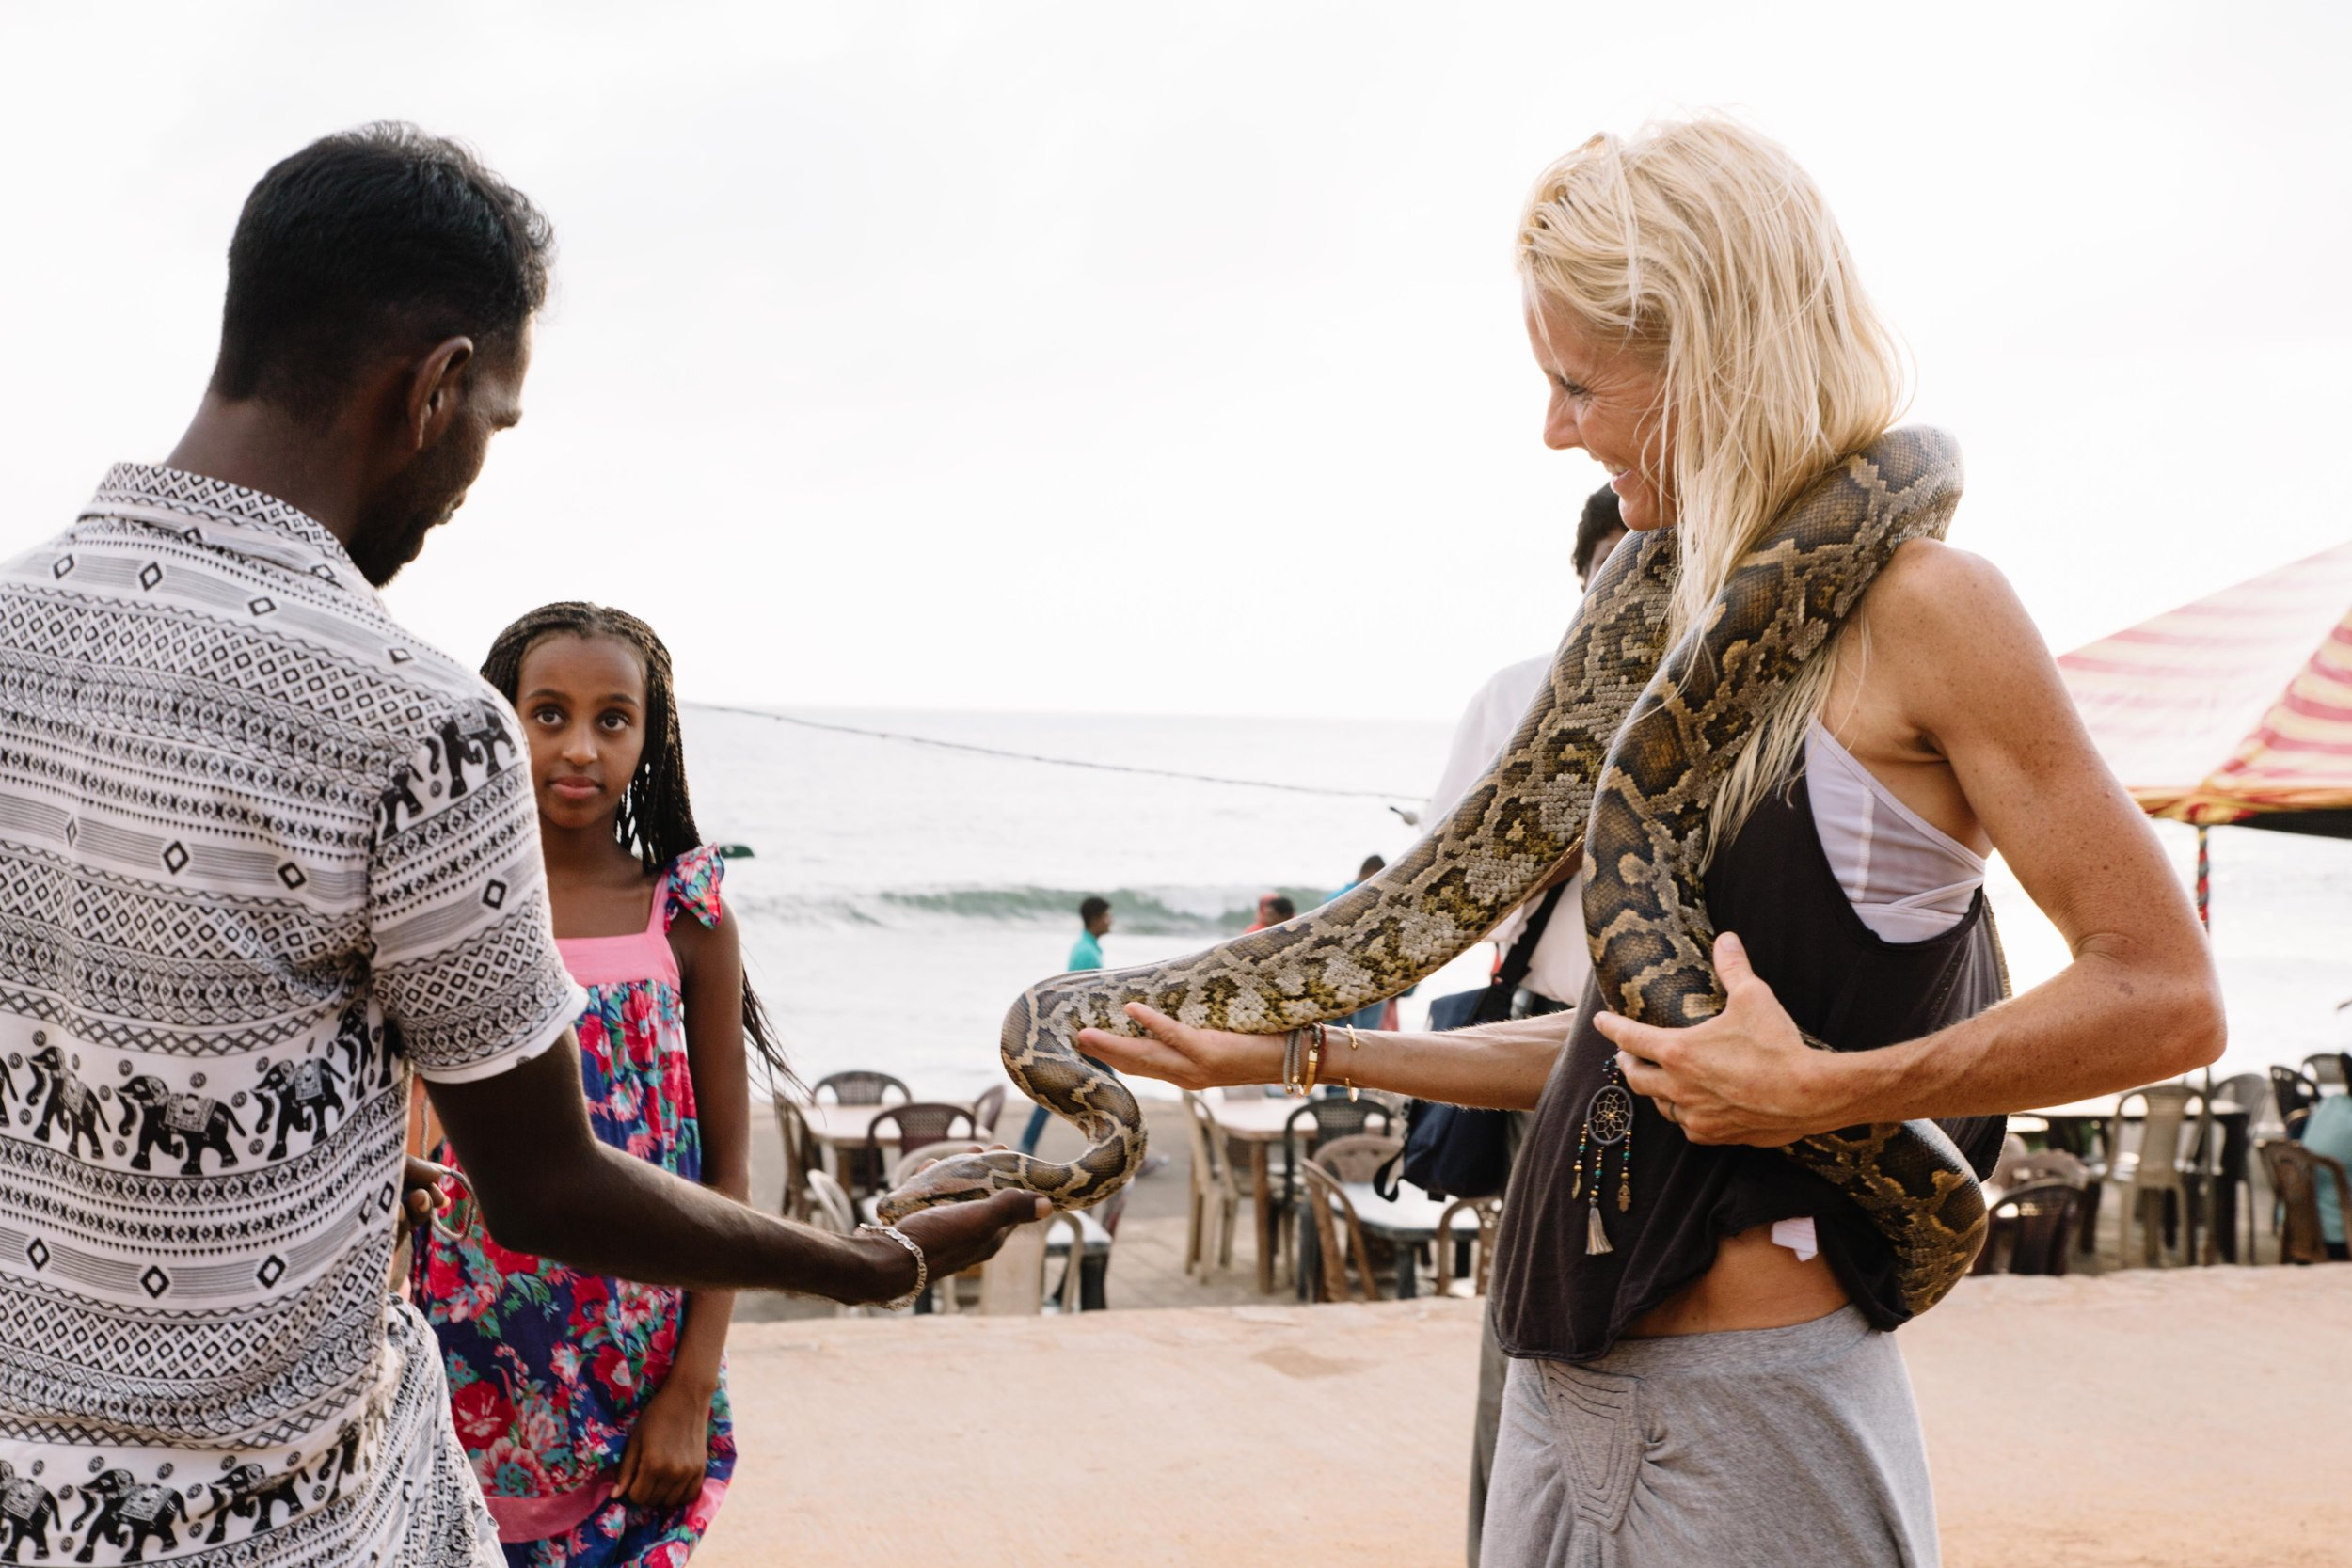 "On our first night in Colombo, Sri Lanka we ran into this ""snake-charmer"" on our way to dinner. After being talked into it for a little while, we held 7 foot pythons and Mom even faced her fear and put one around her neck. I don't think Kya will ever forget this memory!"